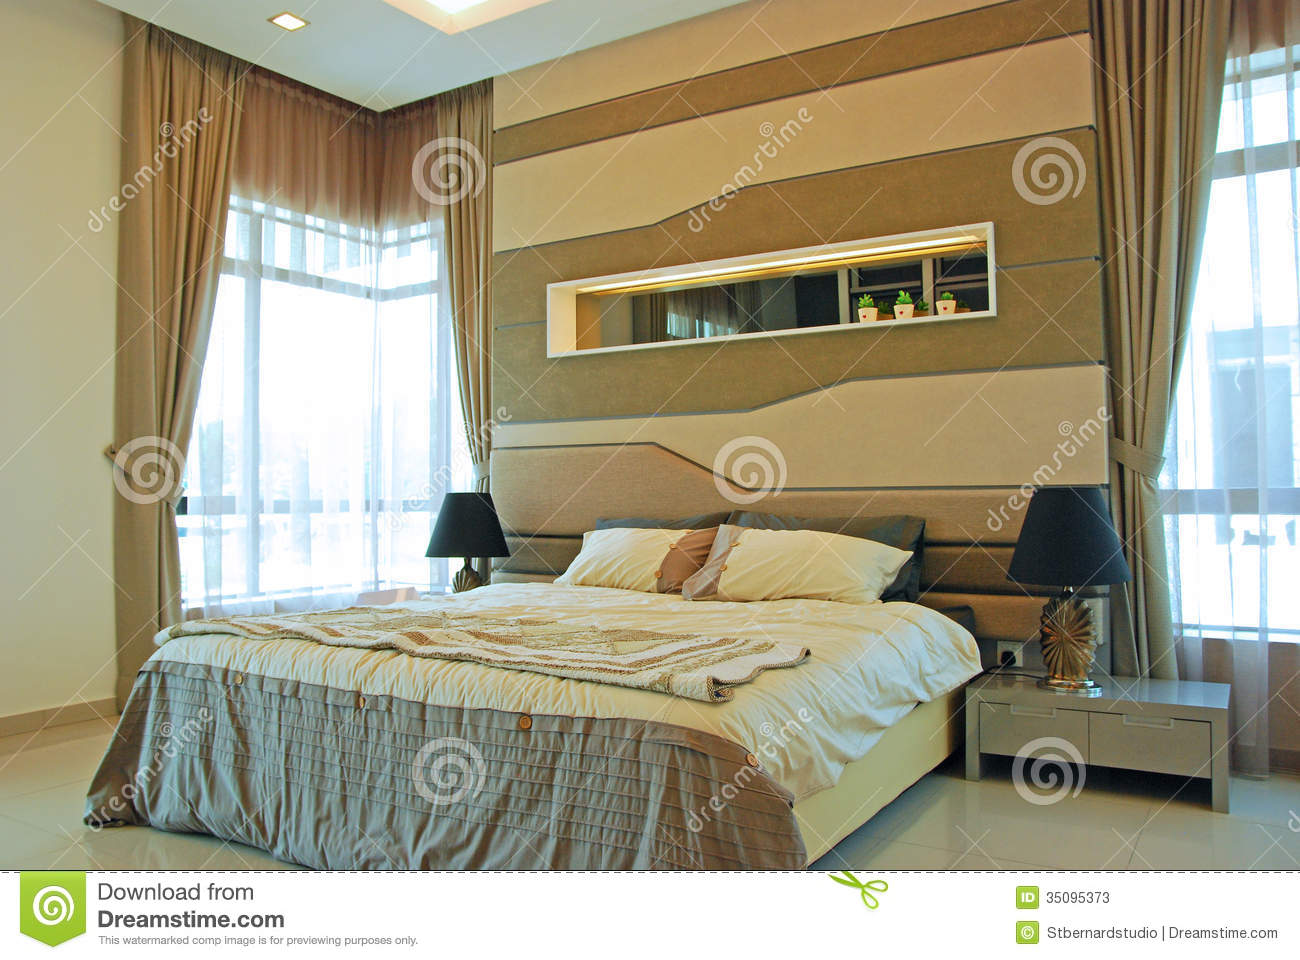 Interior design of master bedroom stock photos image 35095373 - Interior designs for small homes ...